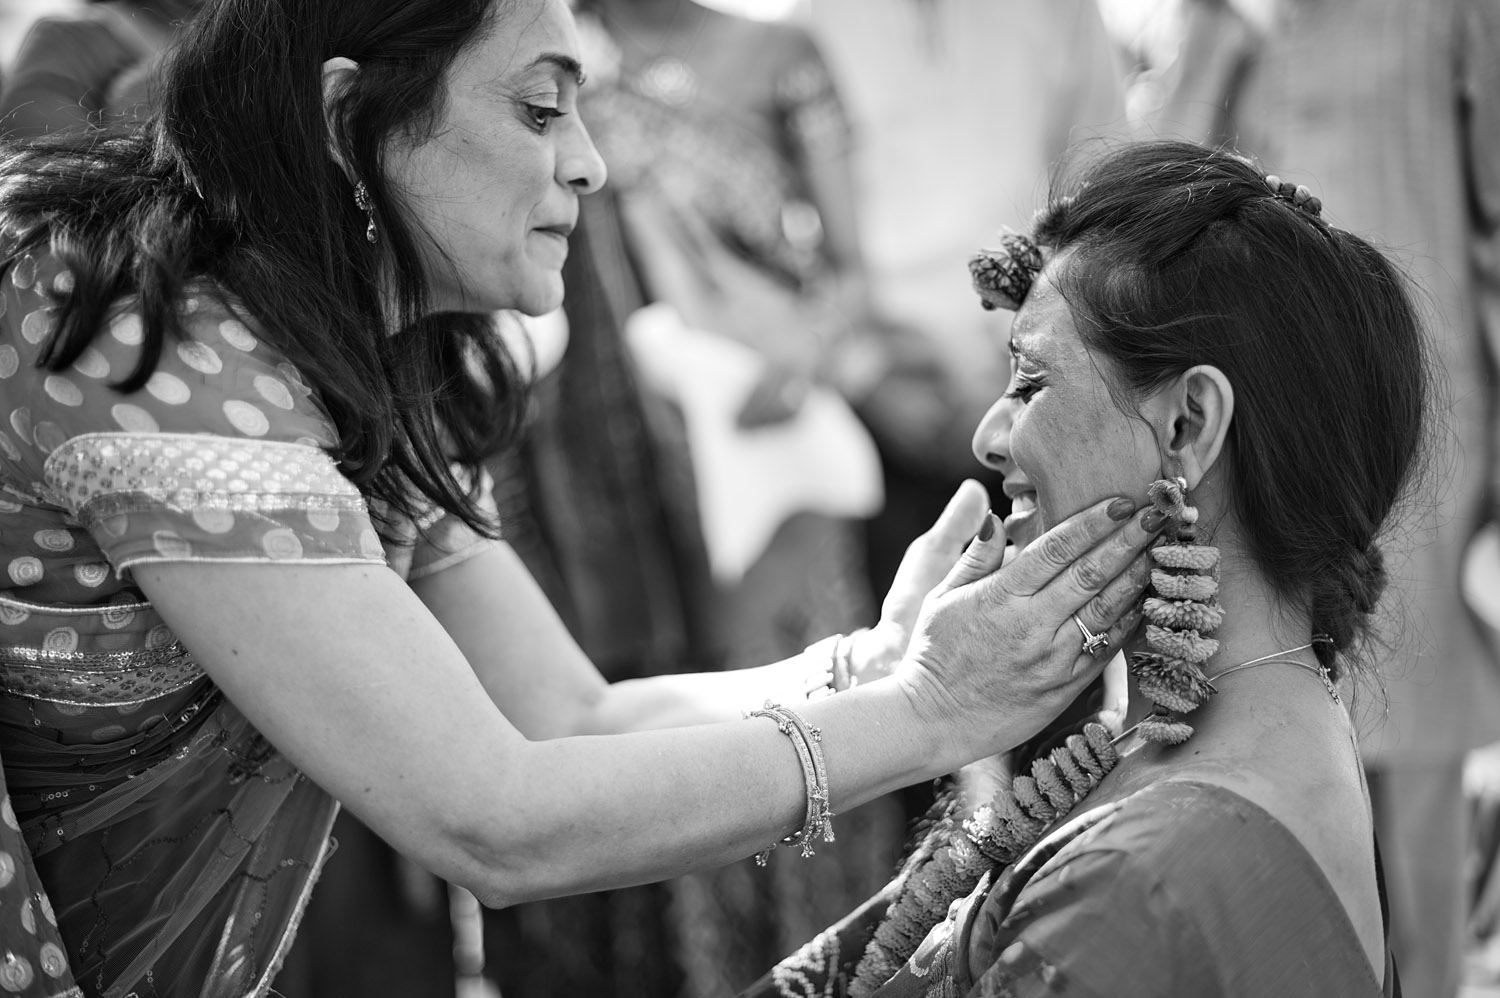 aunti helps bride during her pithi ceremony during this hindu wedding in palm coast florida while Destination Wedding Photographer Lexia Frank - ranked #1 indian wedding photographer - photographs this luxury indian wedding on film because she is a film photographer who shoots indian weddings for brides who love maharani weddings and south asain bride weddings